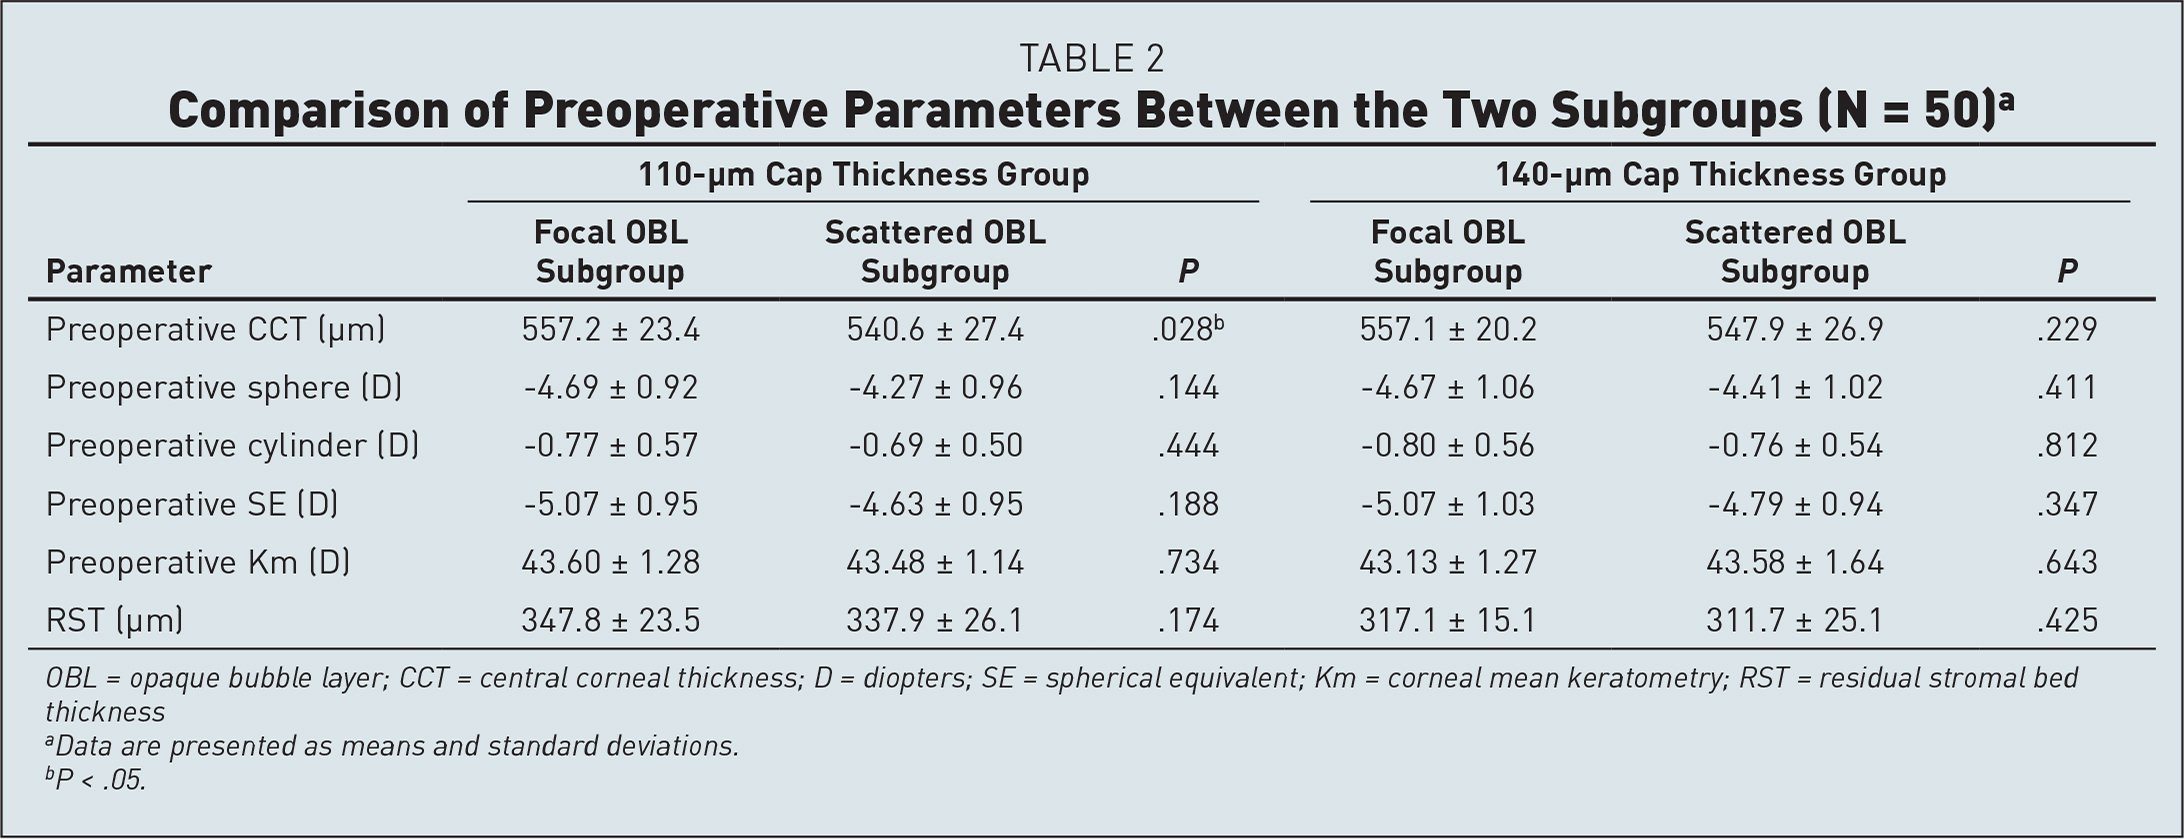 Comparison of Preoperative Parameters Between the Two Subgroups (N = 50)a